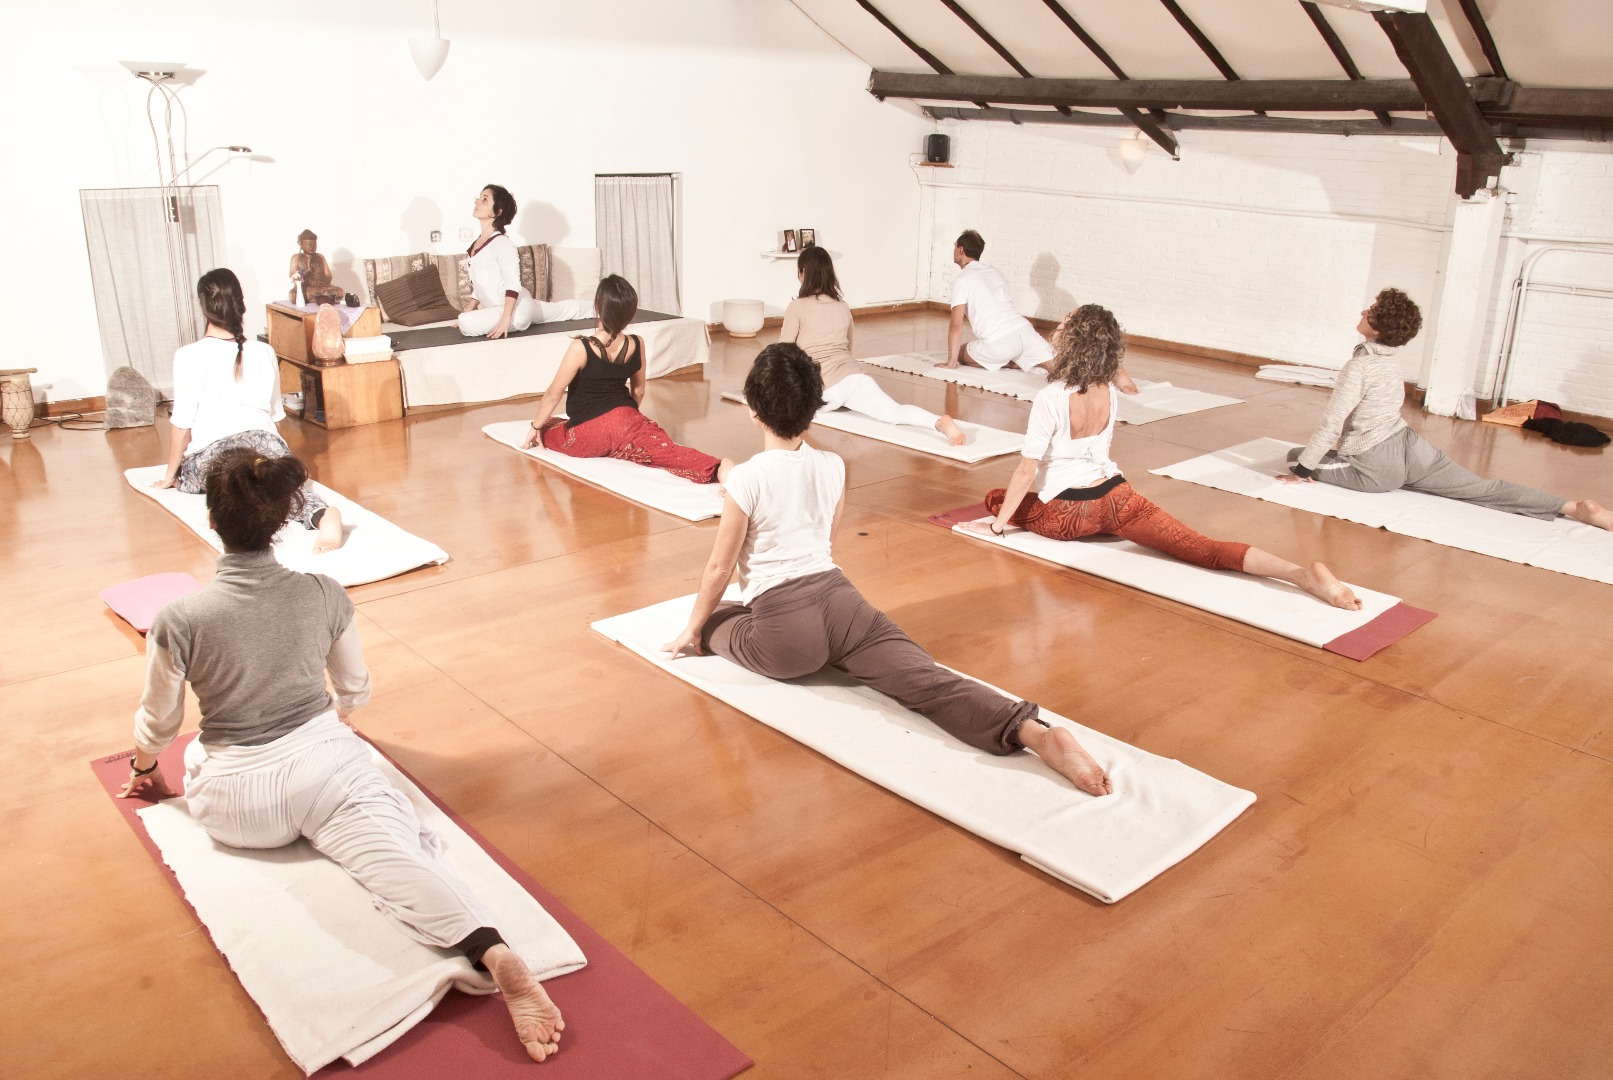 Foto 1 Oferta Gimnasio Happy Yoga Central Barcelona - GymForLess